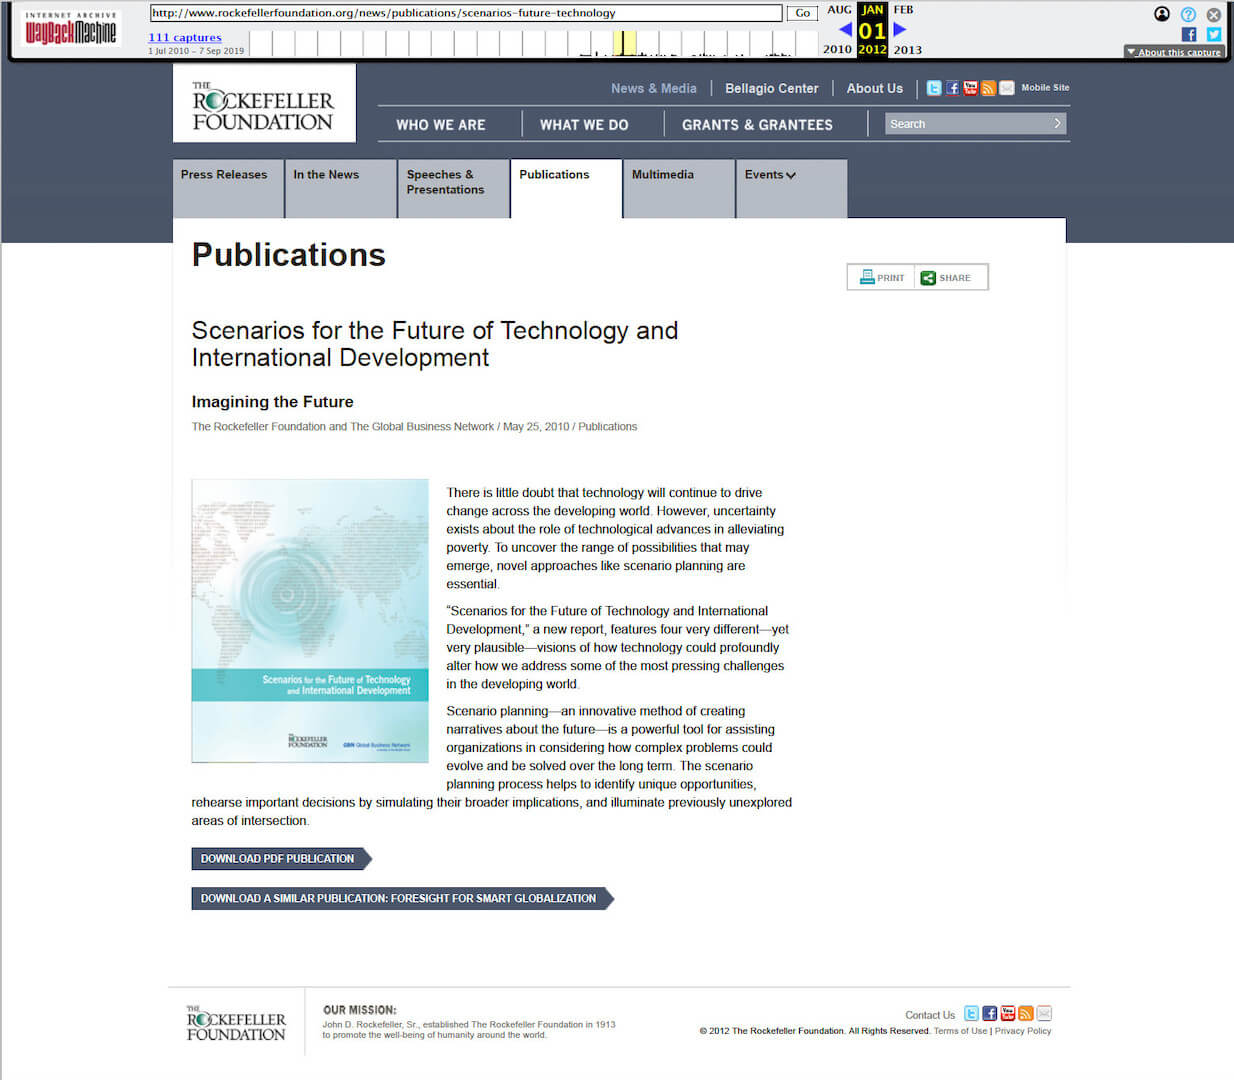 Scenarios For The Future Of Technology And International Development - Internet Archive Screen Shot